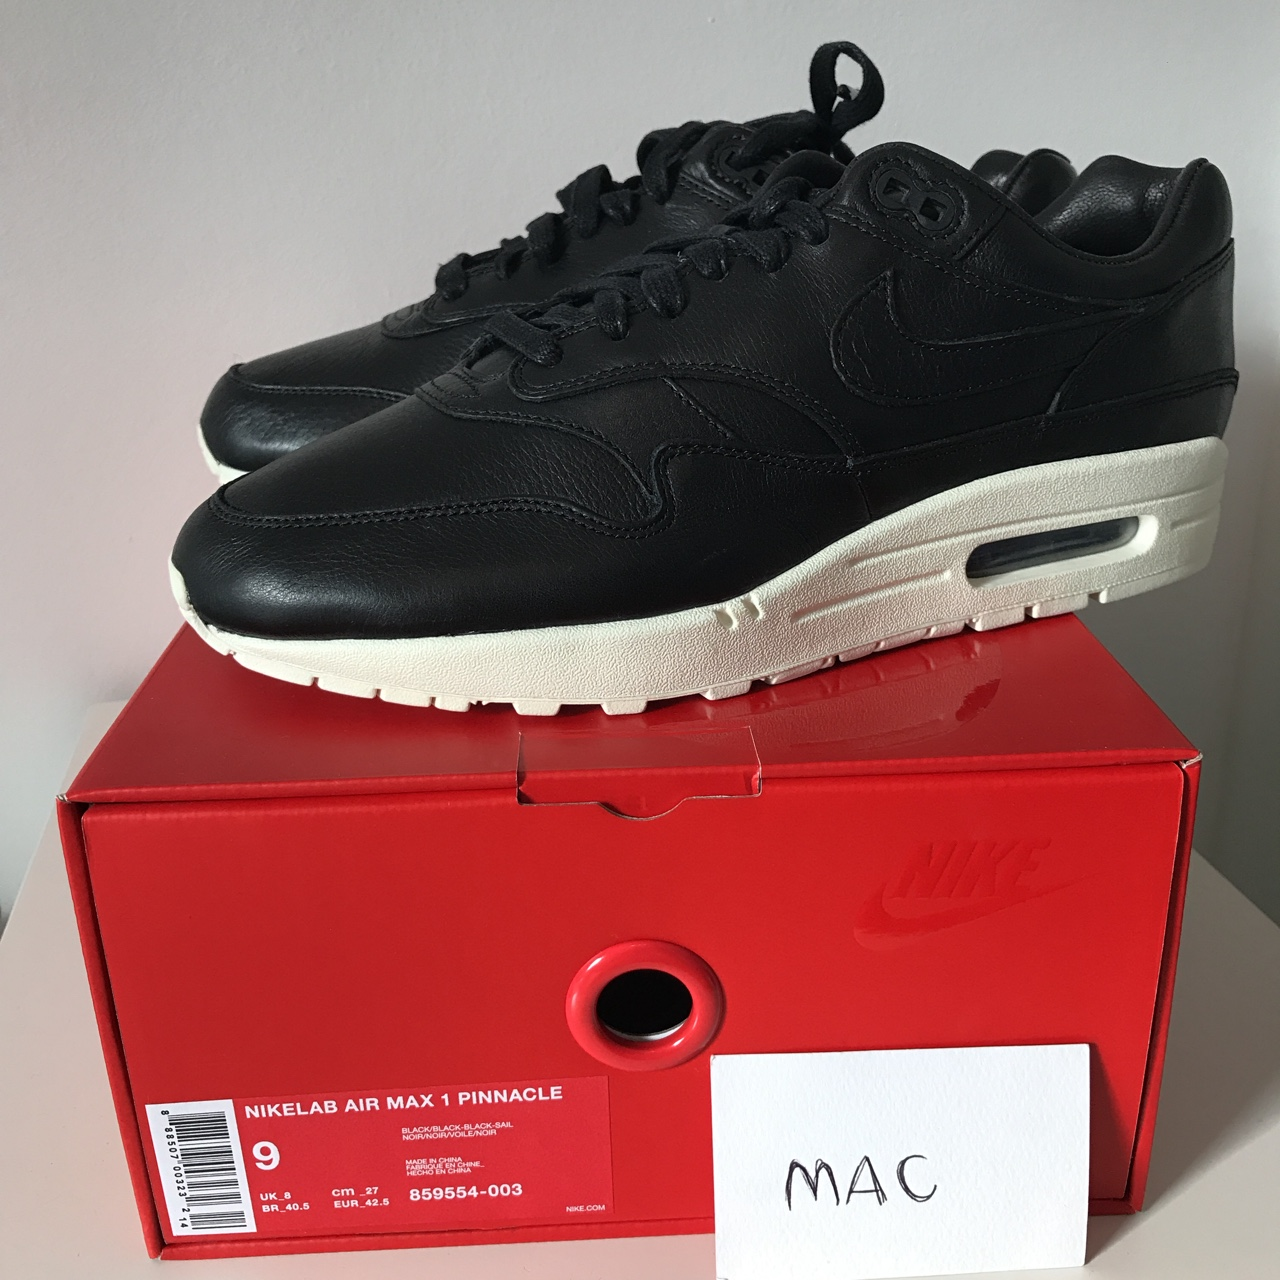 Nike Lab Air Max 1 Pinnacle 859554 003 DS Never worn